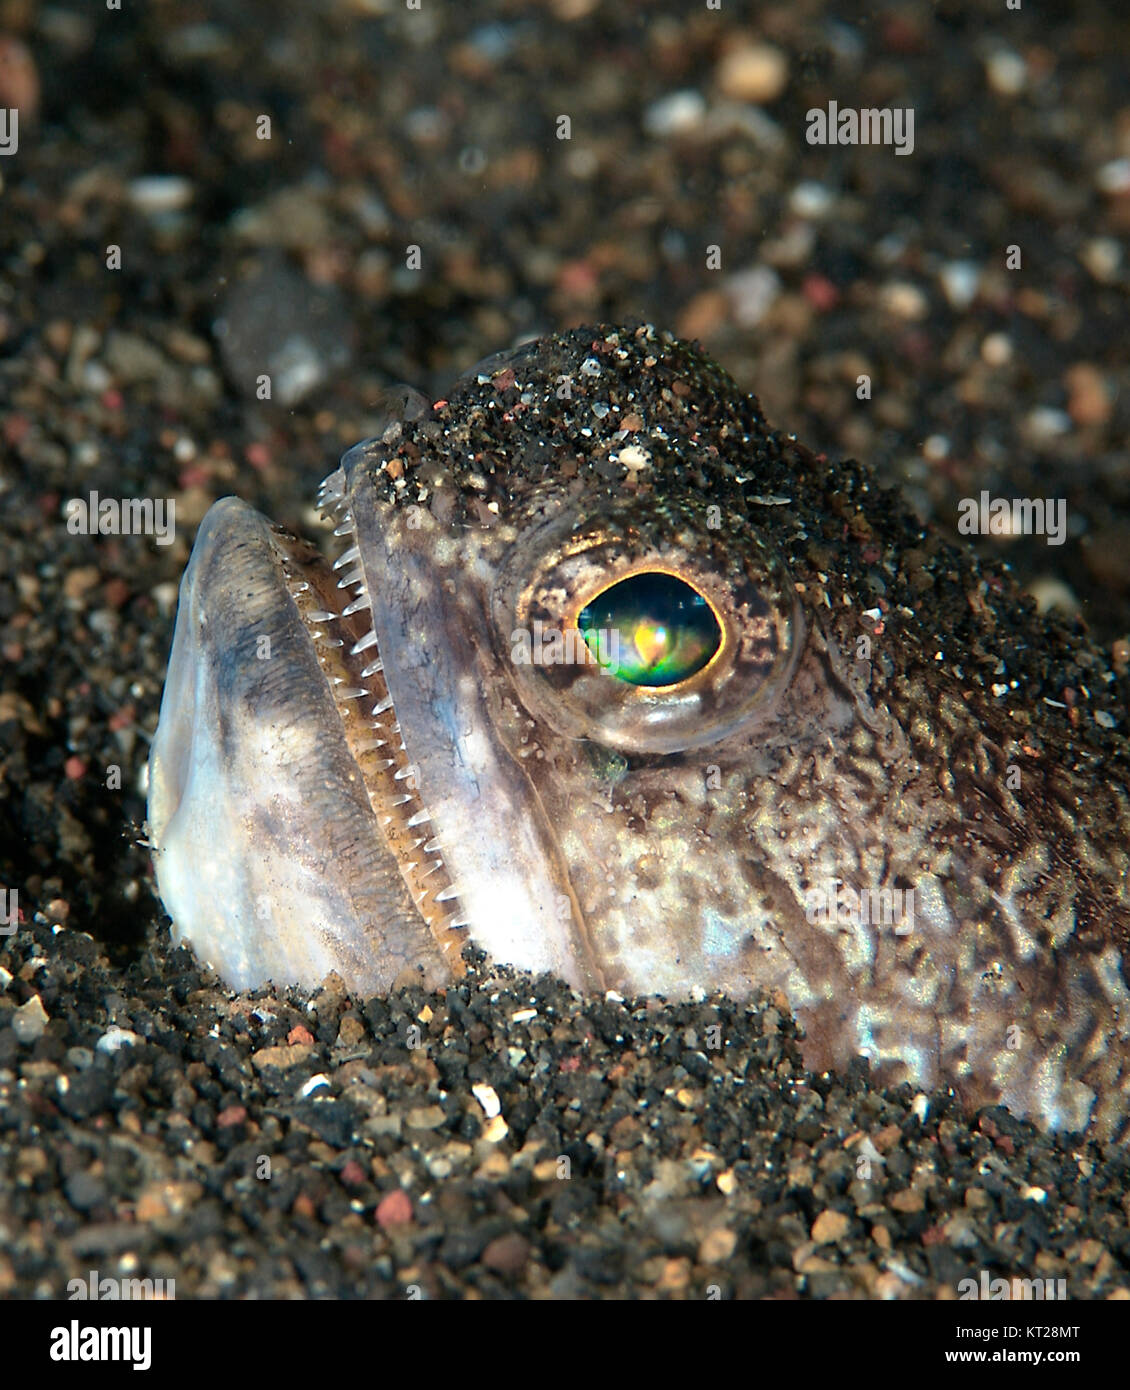 JAWFISH HEAD STICKING OUT OF SEA FLOOR - Stock Image